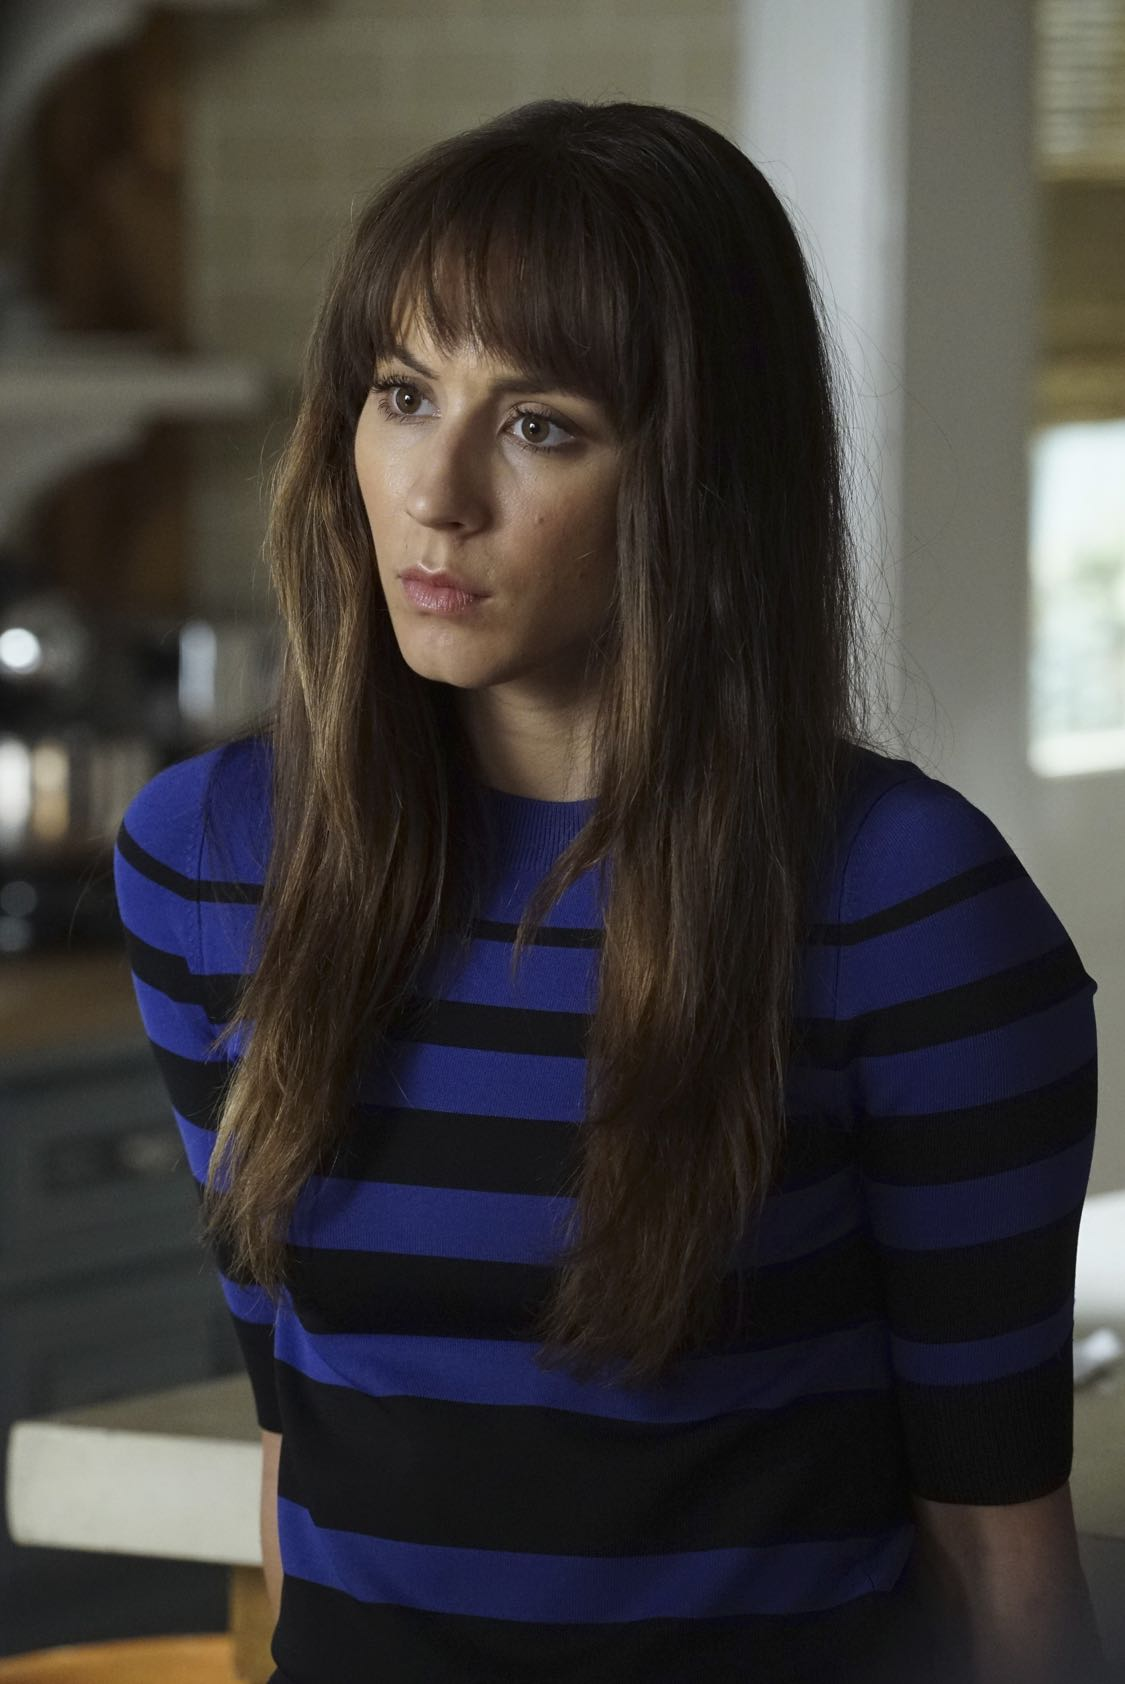 """PRETTY LITTLE LIARS - """"The Darkest Knight"""" - The PLLs confront old foes head-on and mayhem ensues in """"The Darkest Knight,"""" the summer finale of the hit original series """"Pretty Little Liars,"""" airing TUESDAY, AUGUST 30 (8:00-9:00 p.m. EDT). Fans can catch up on all of the drama with an all-day marathon of season seven starting at 11:00 a.m. EDT and running up to the one-hour summer finale at 8:00 p.m. EDT. (Freeform/Ron Tom) TROIAN BELLISARIO"""